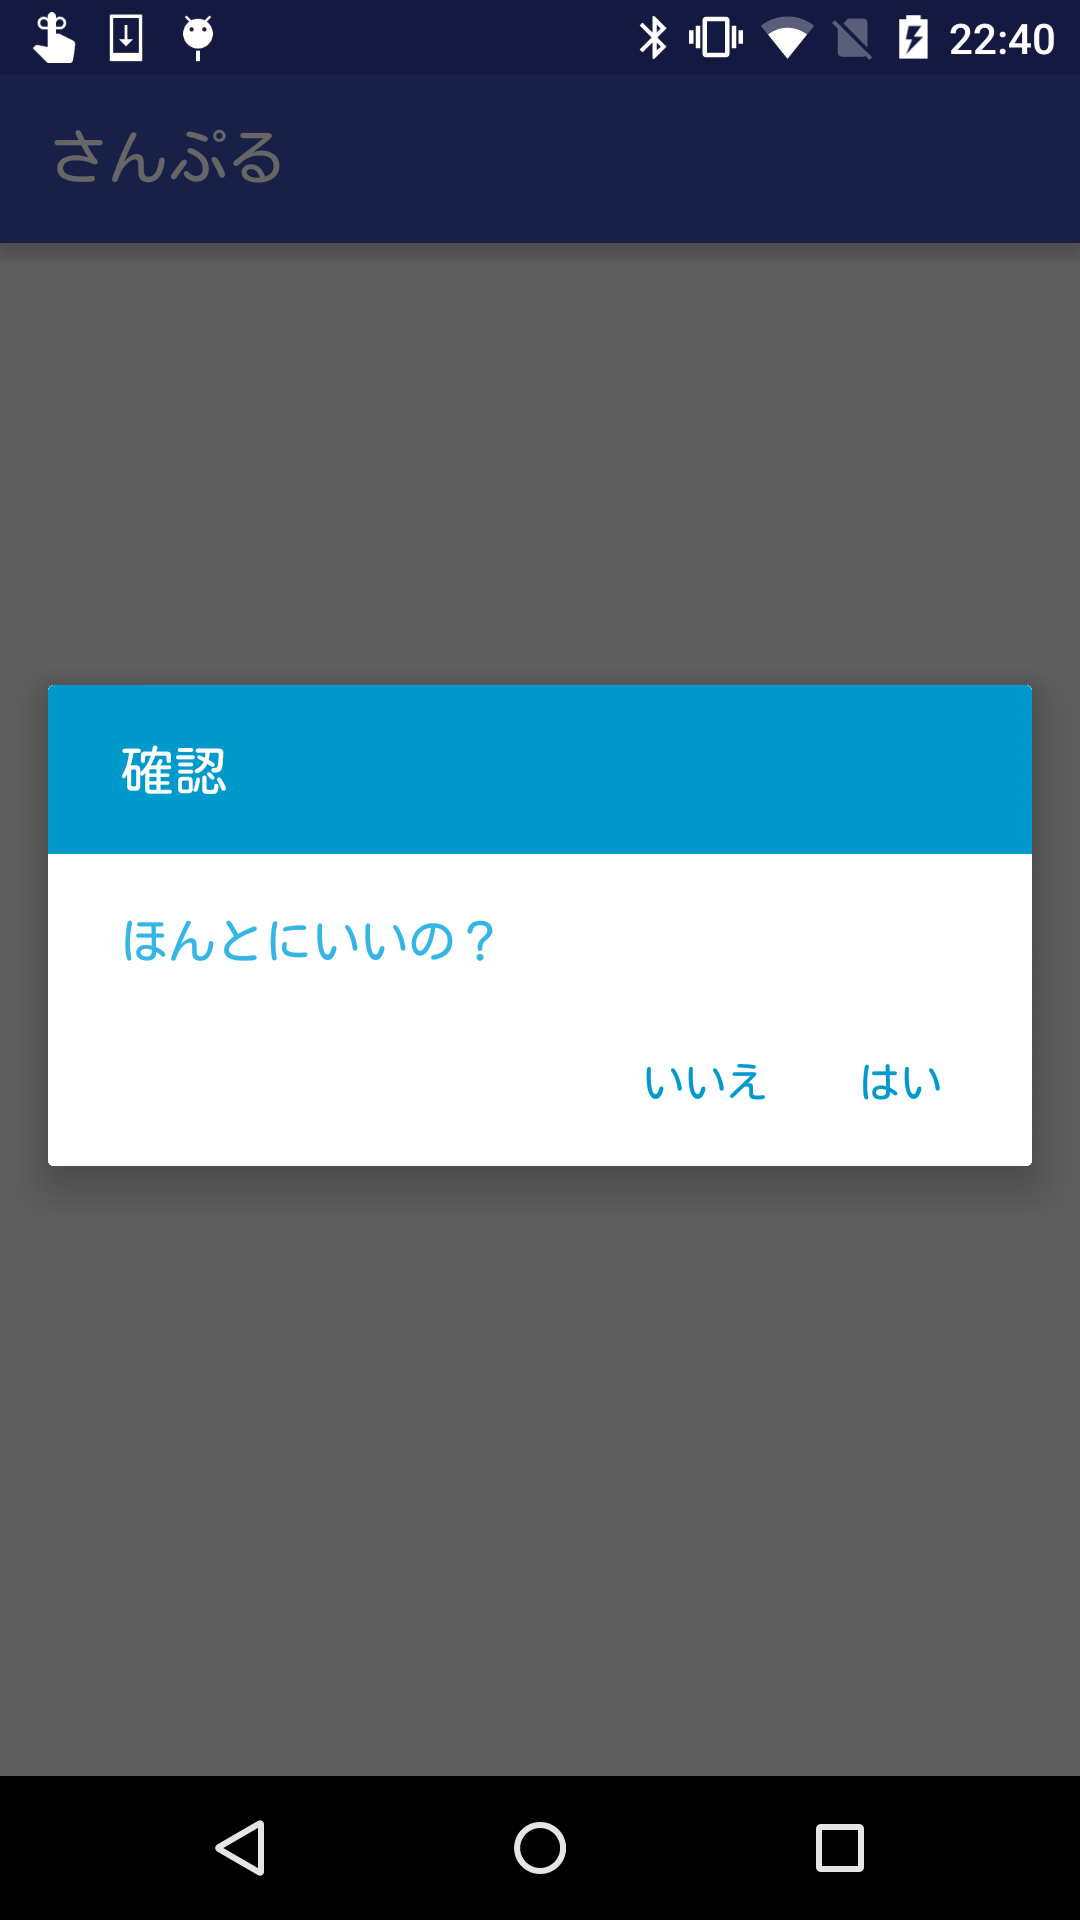 device-2015-11-16-224103.png